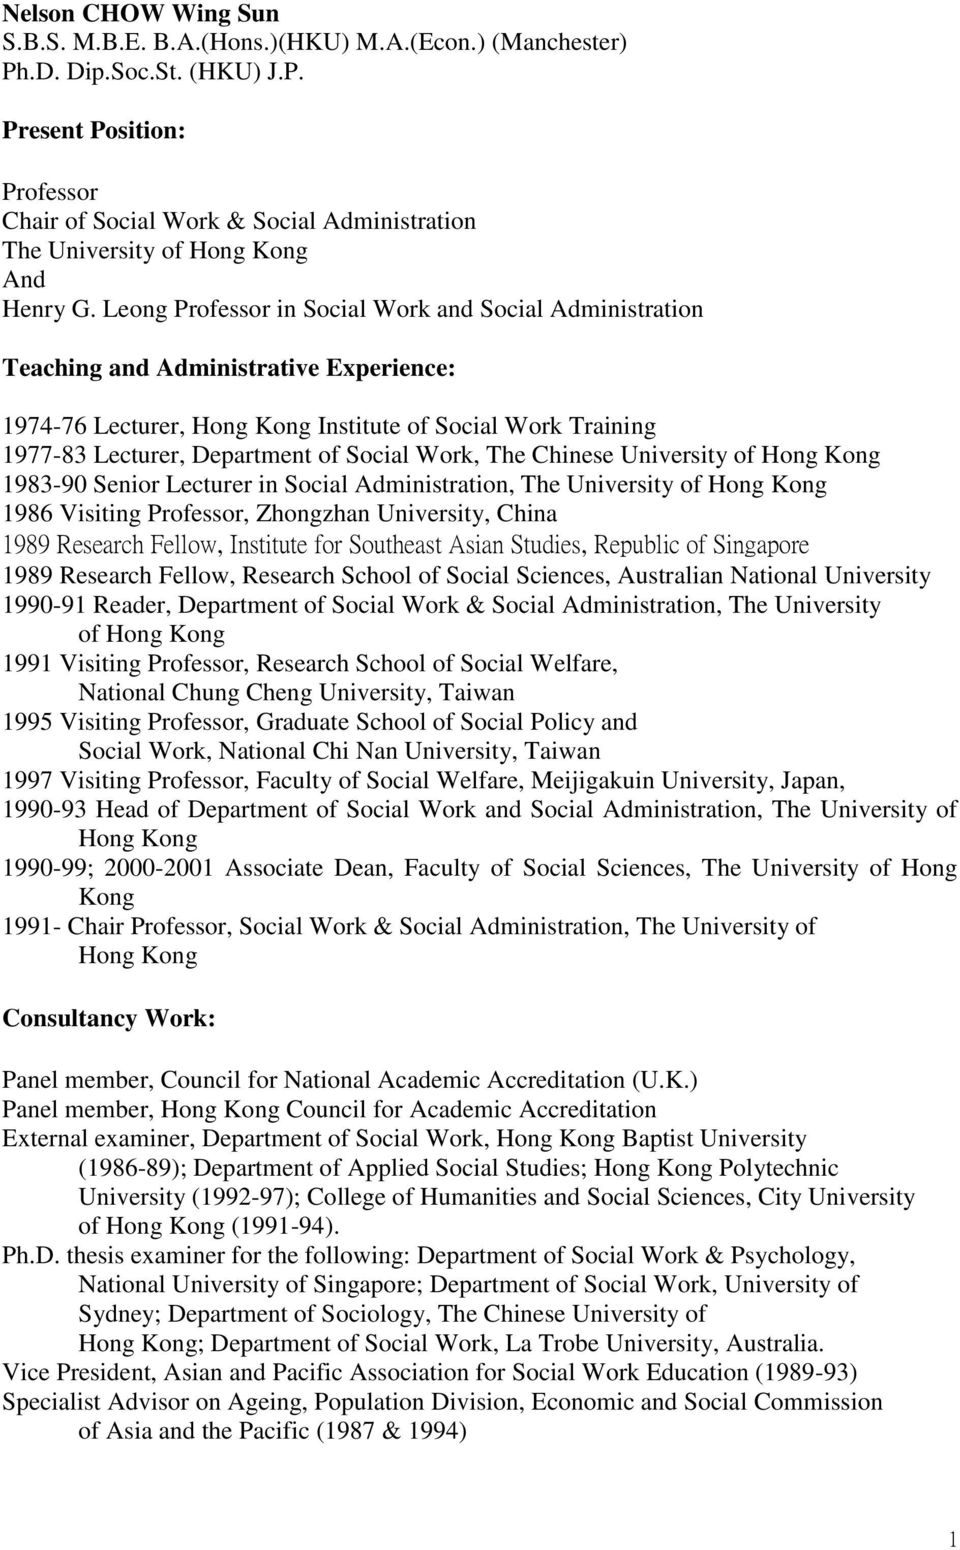 Work, The Chinese University of Hong Kong 1983-90 Senior Lecturer in Social Administration, The University of Hong Kong 1986 Visiting Professor, Zhongzhan University, China 1989 Research Fellow,